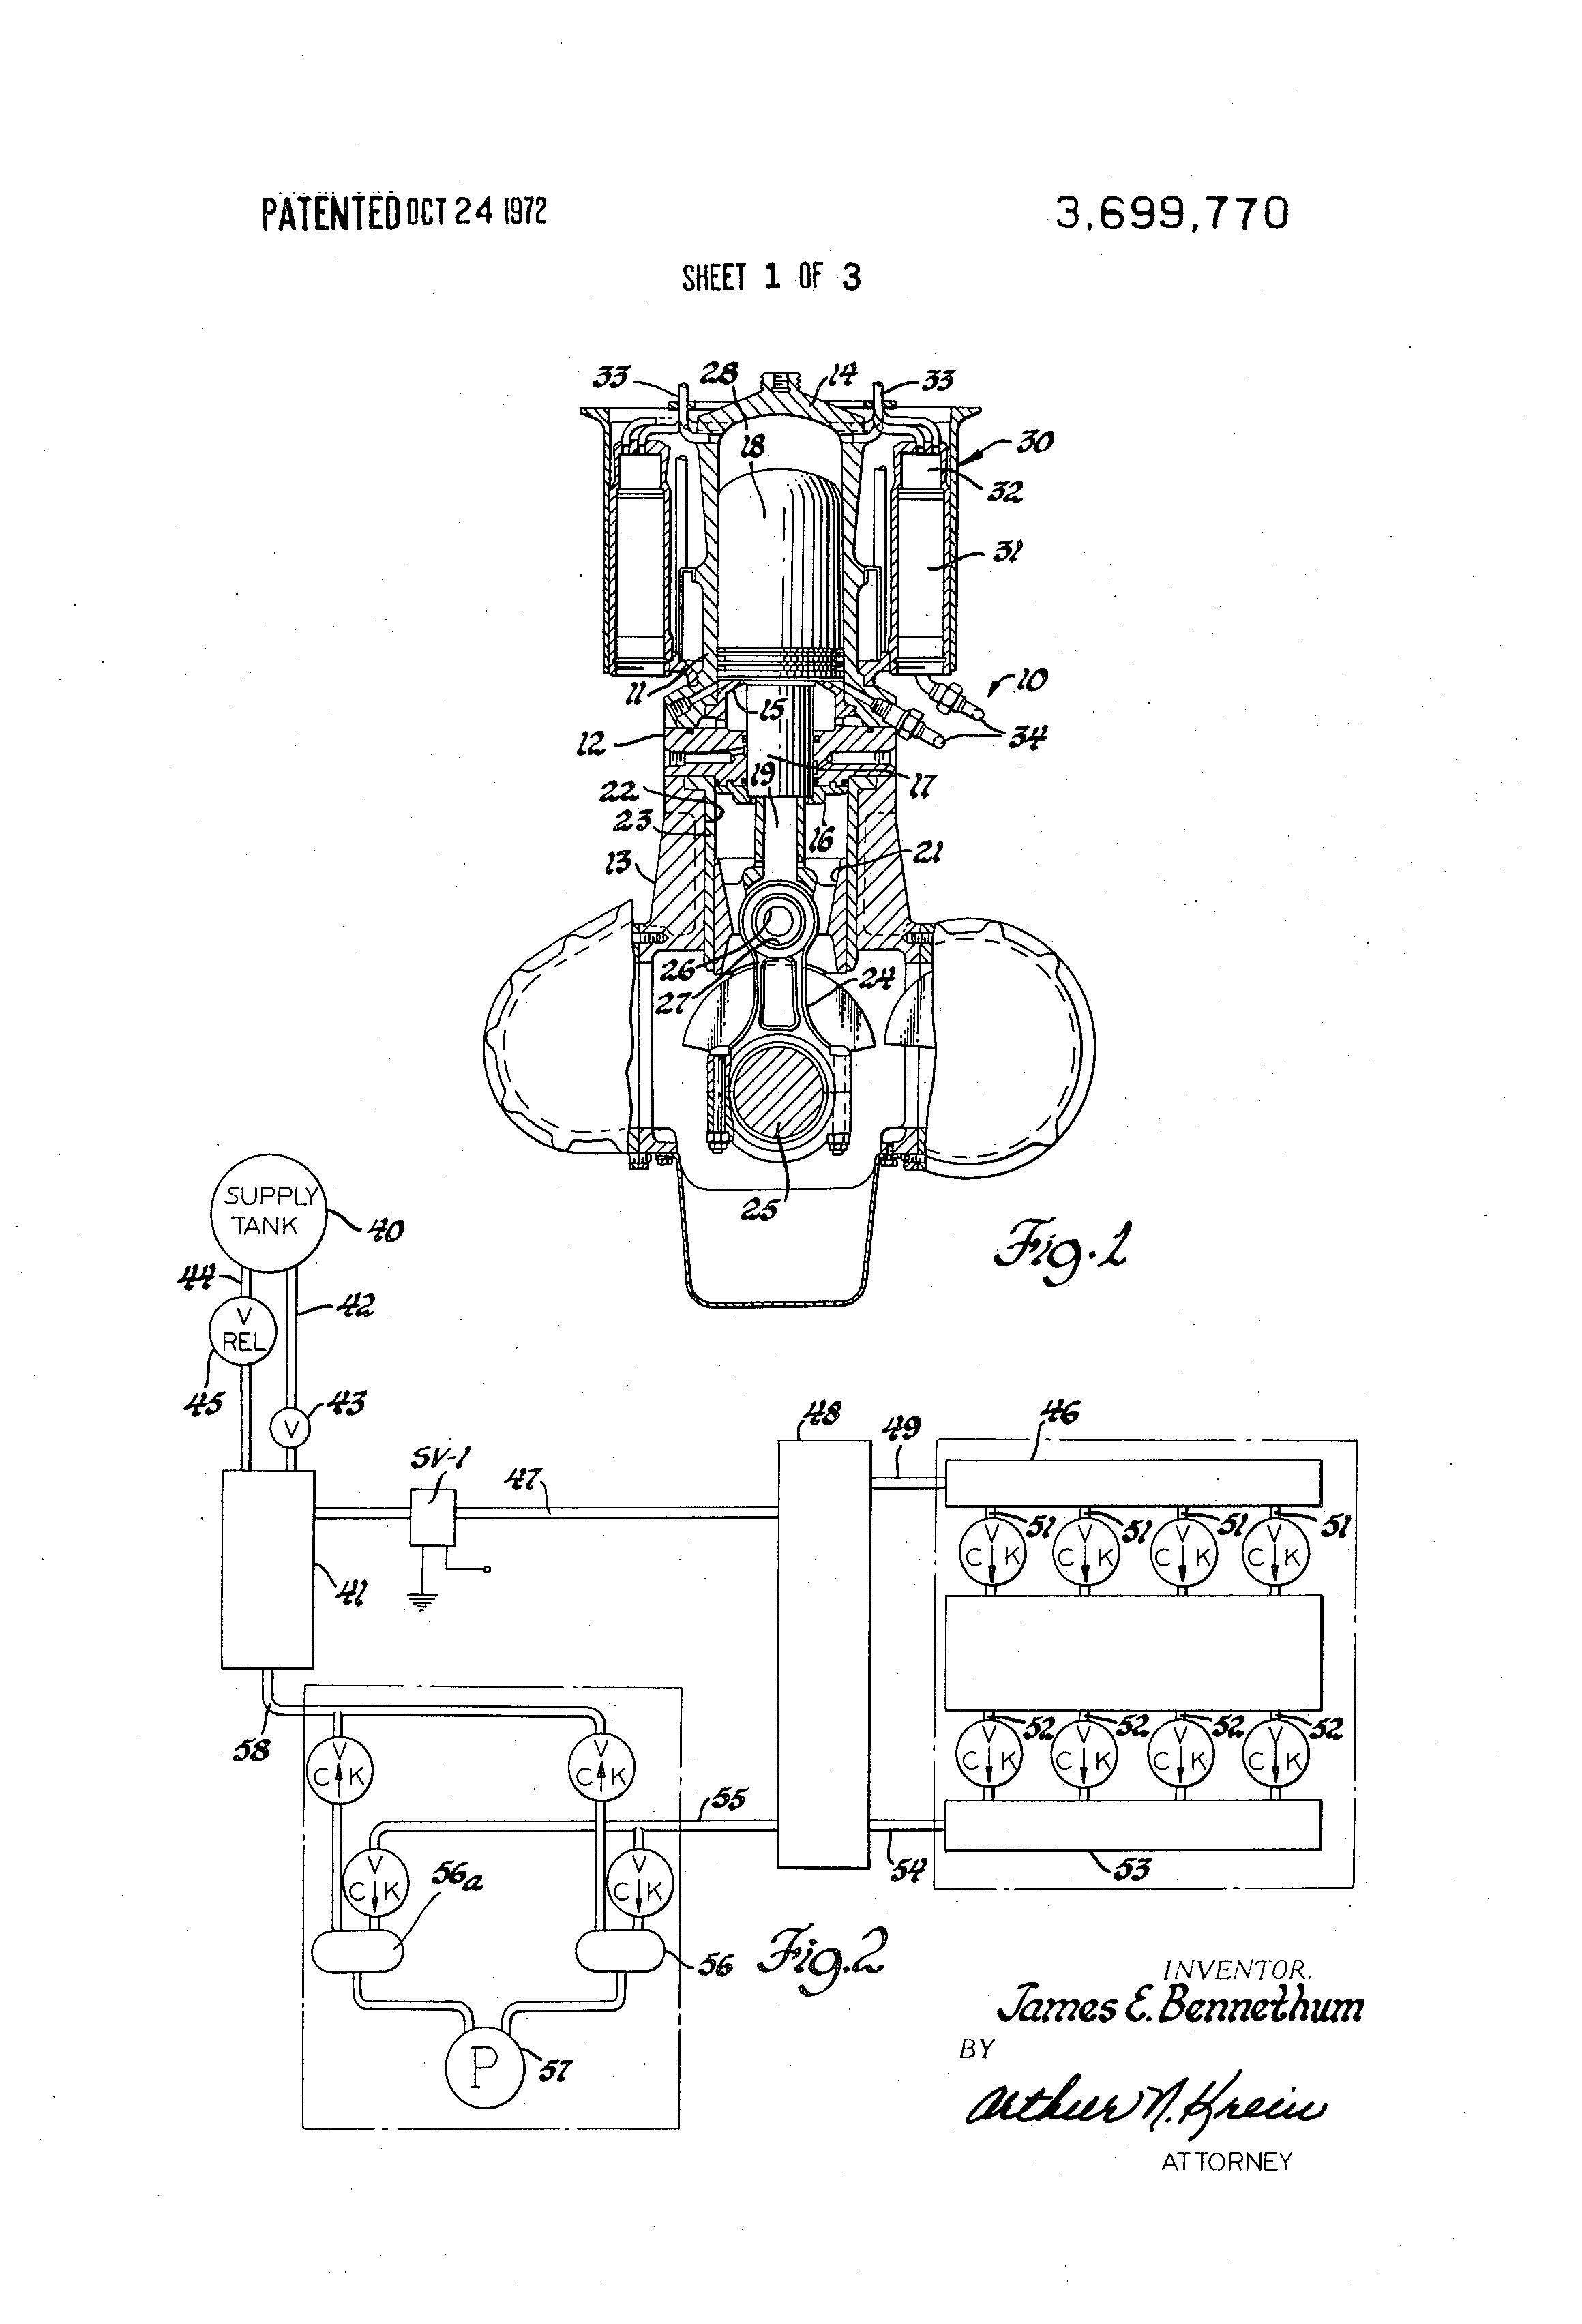 Stirling engine control system US 3699770 A Patent Drawing